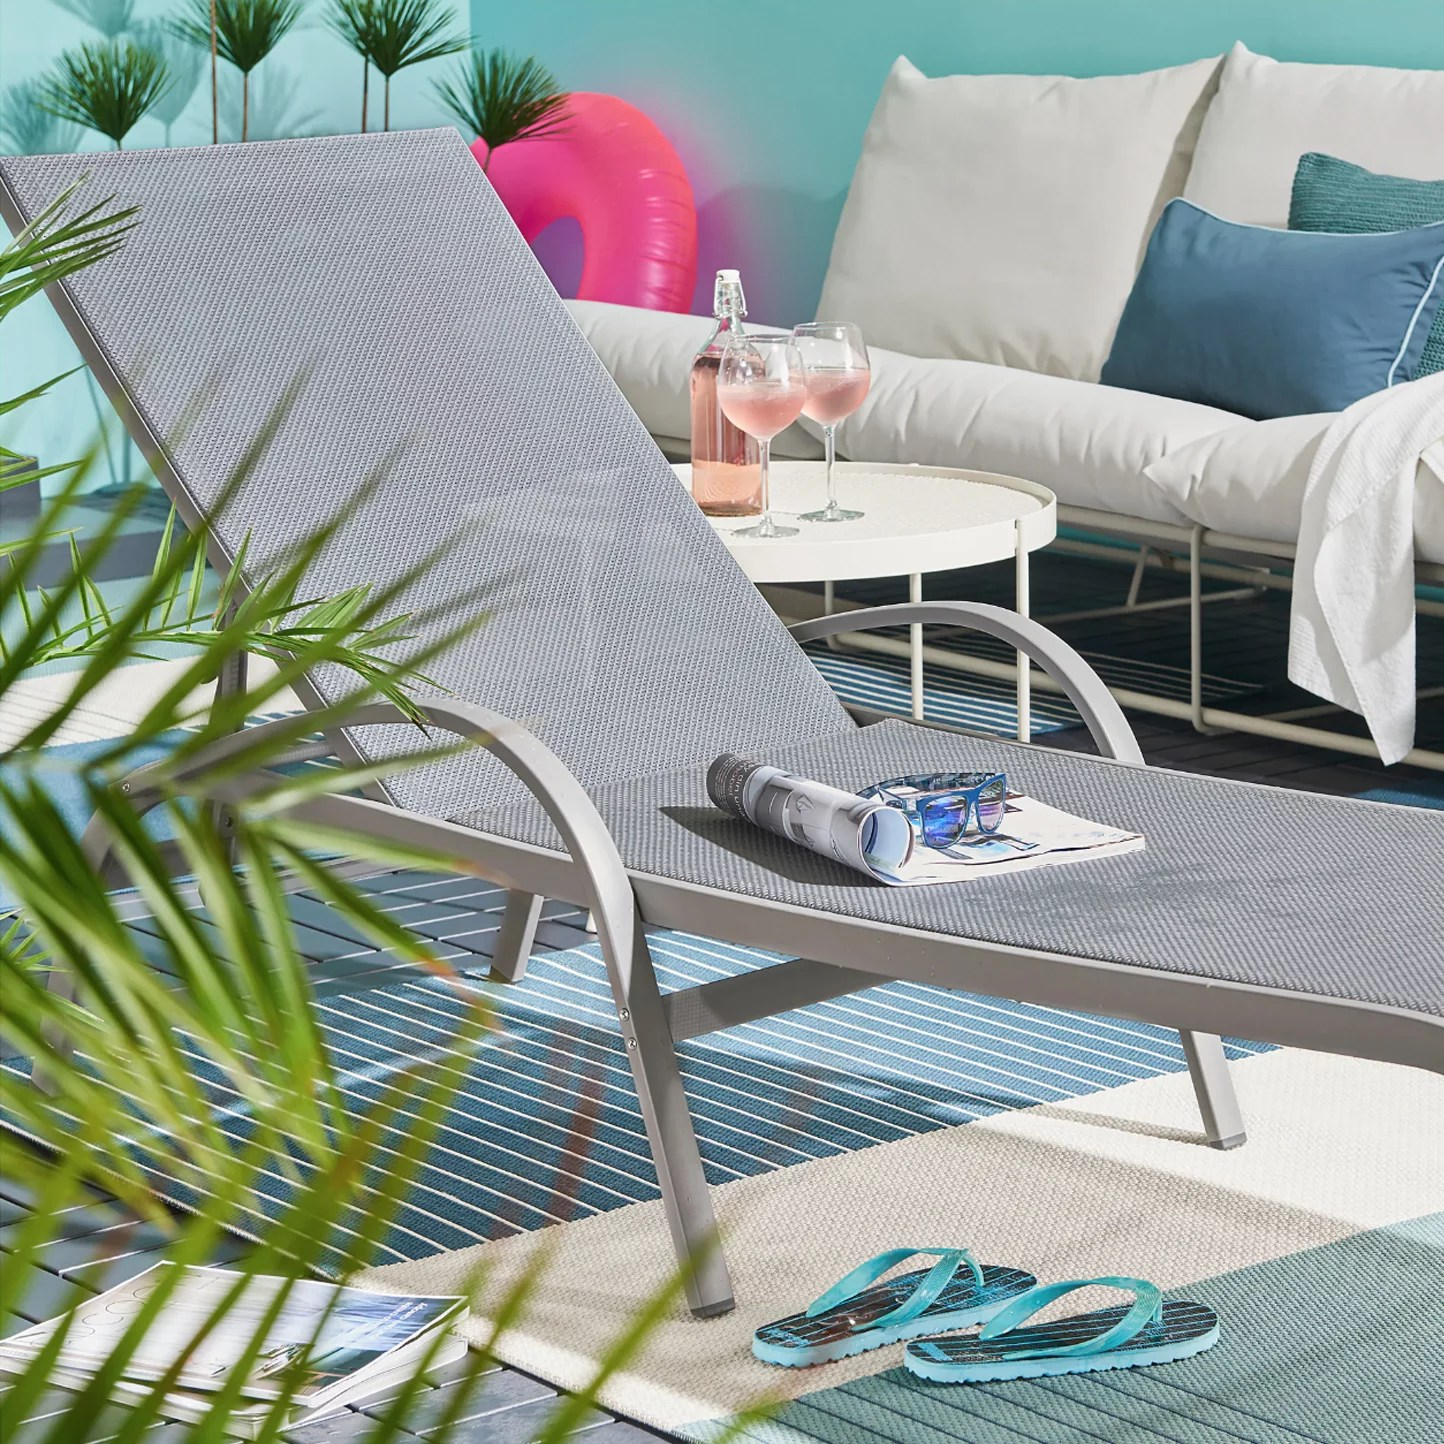 Ikea Outdoor Furniture Australia Best Ikea Outdoor Furniture 2019 Popsugar Home